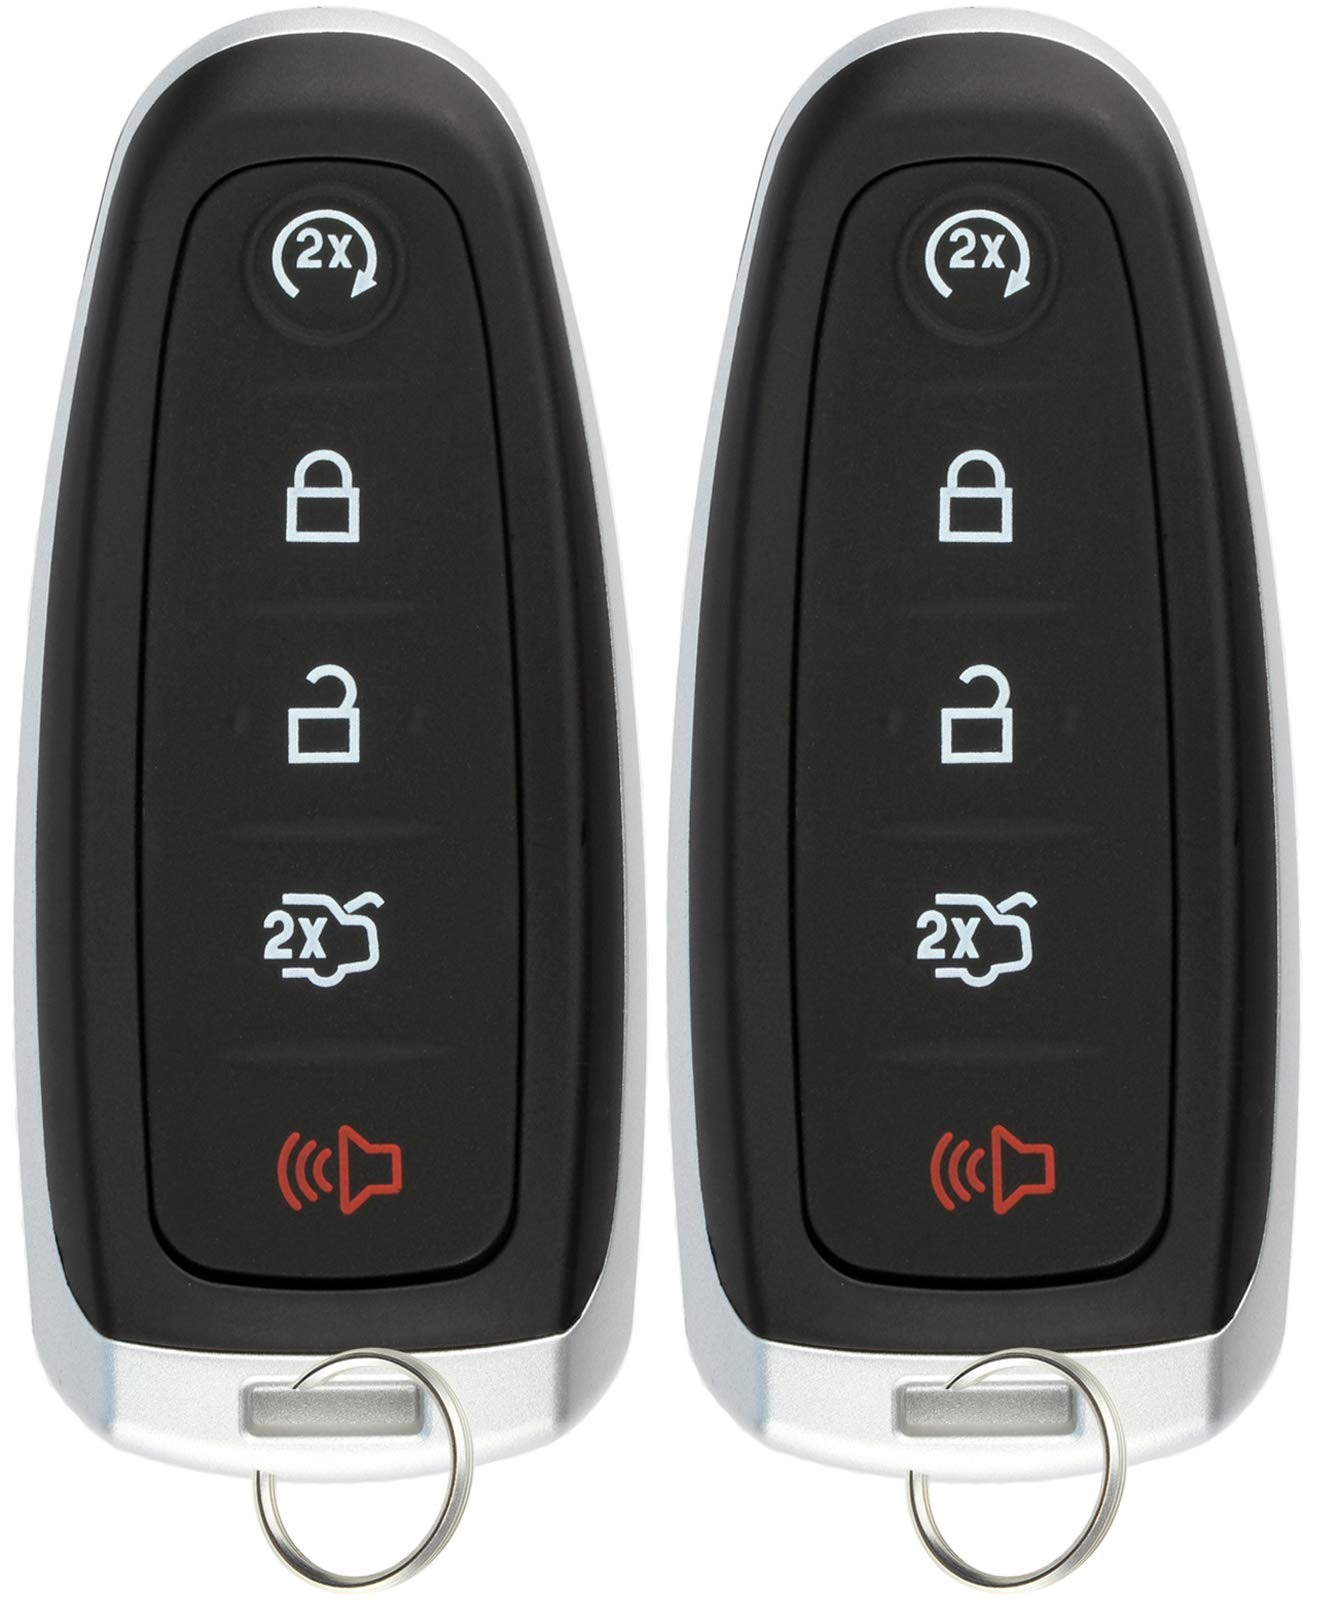 KeylessOption Keyless Entry Car Remote Start Smart Key Fob for Ford Lincoln M3N5WY8609 (Pack of 2)